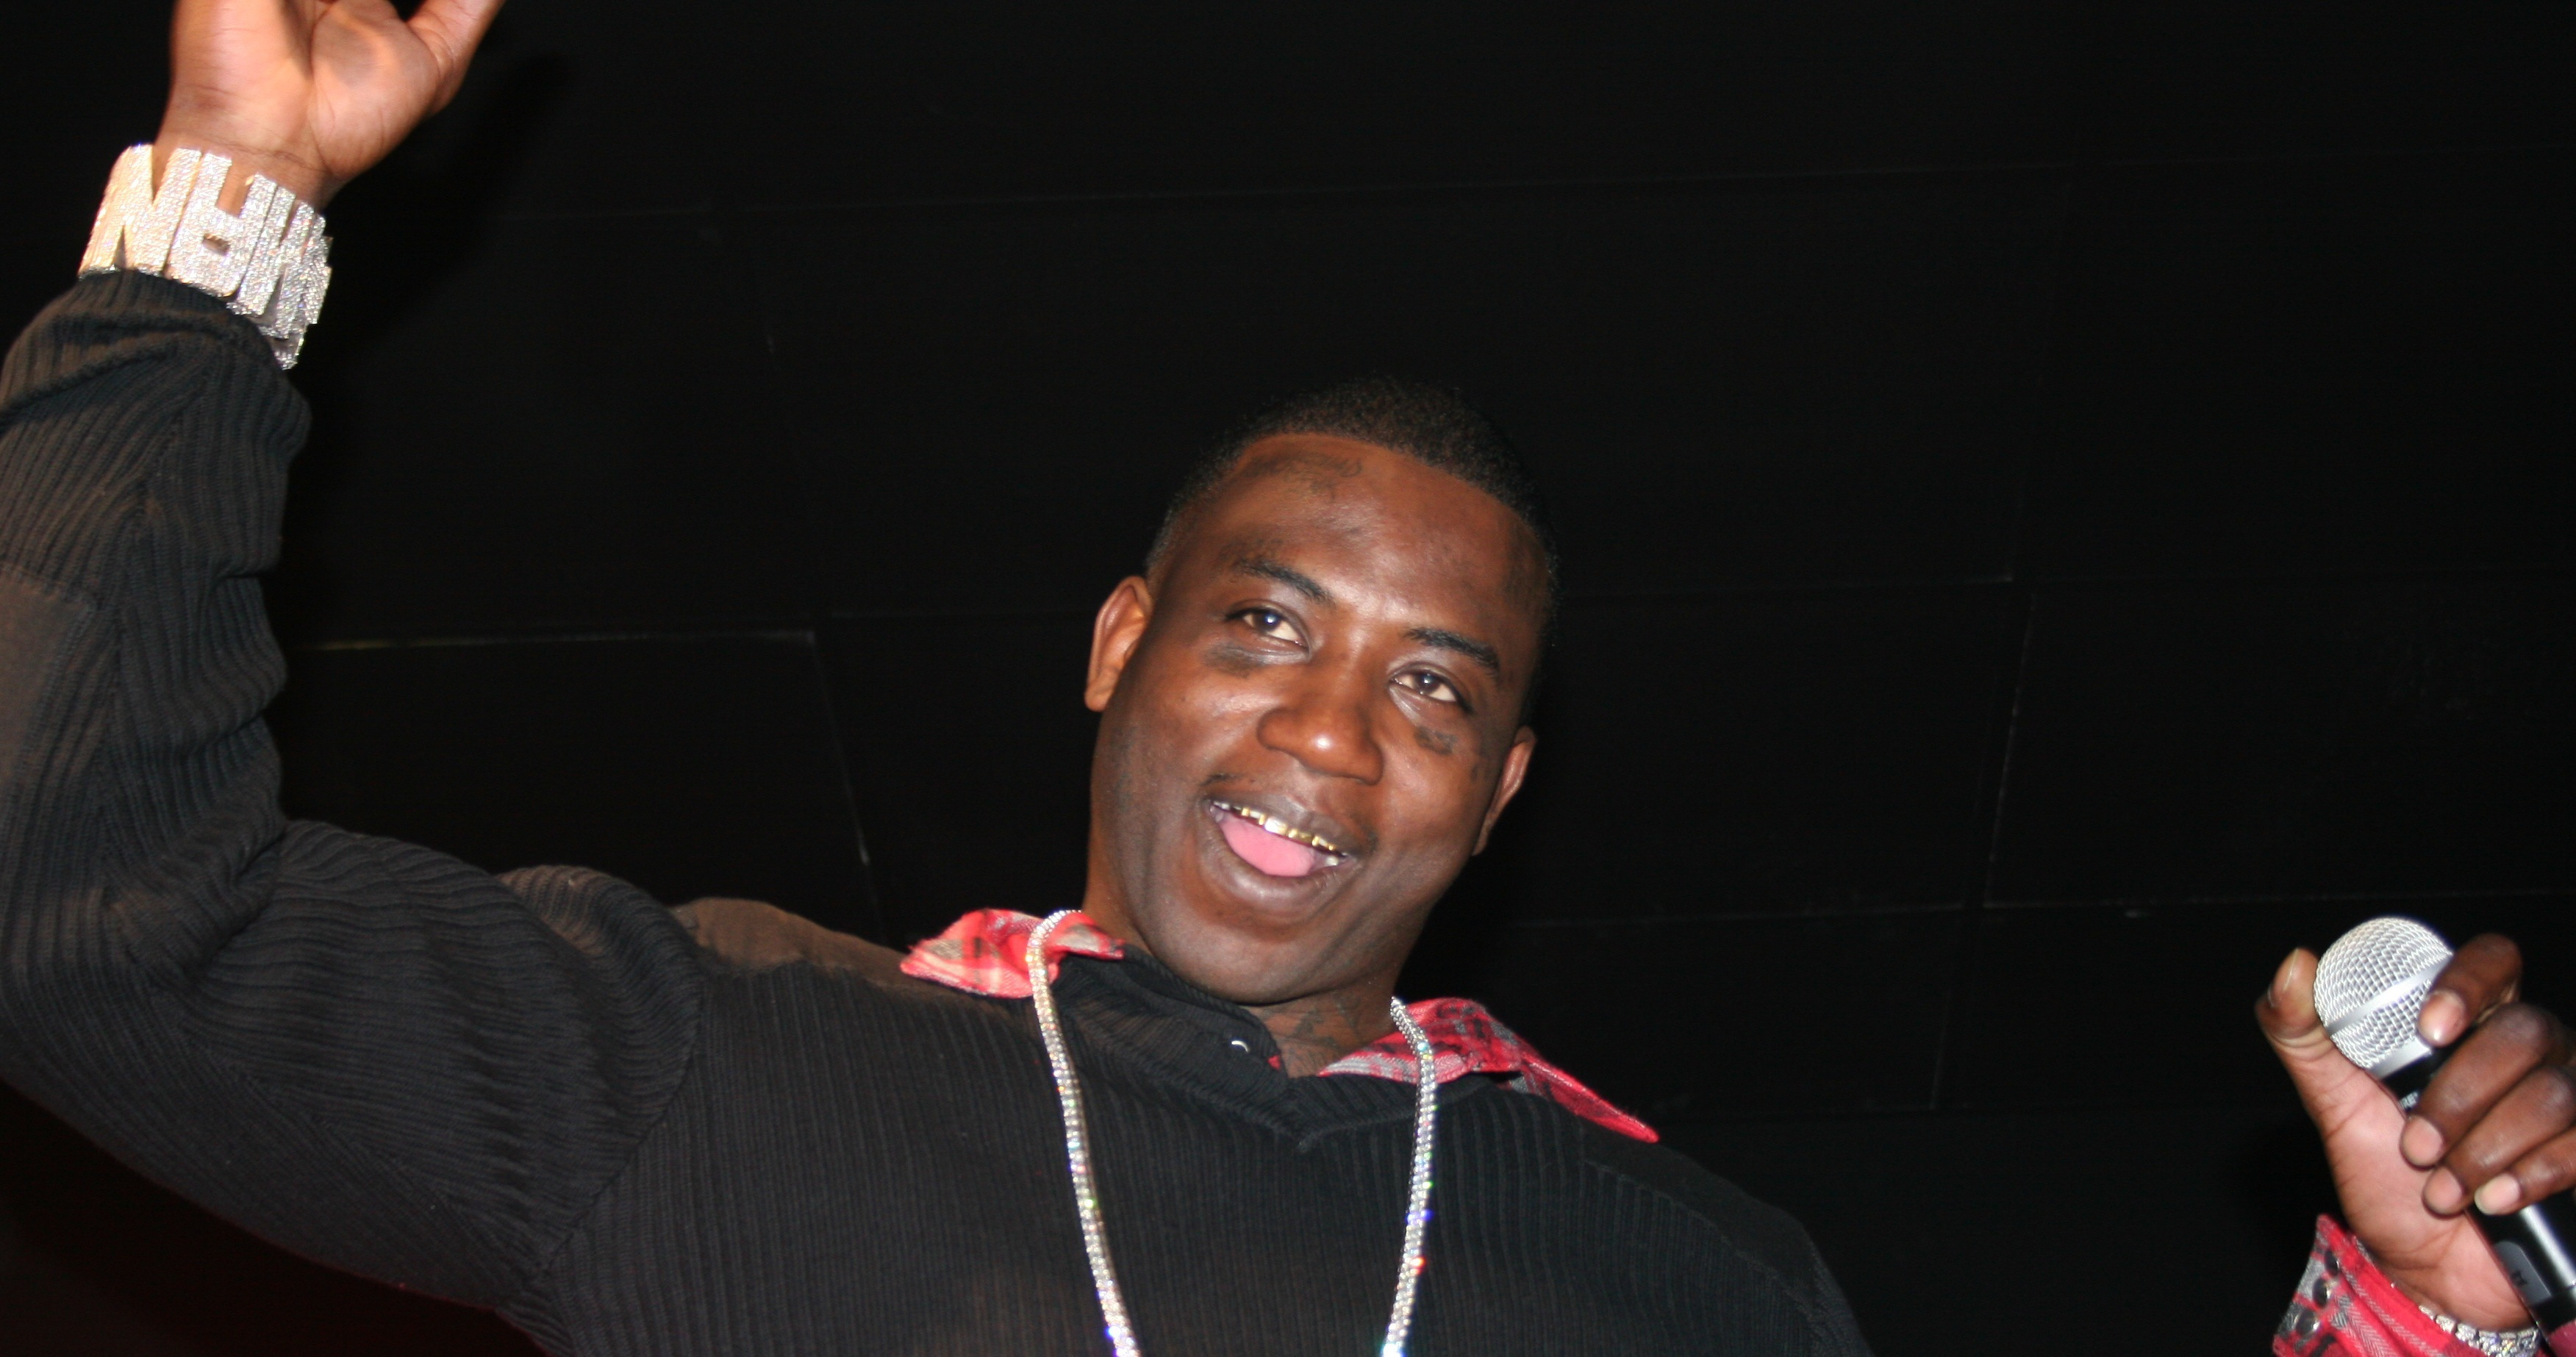 Gucci Mane Wallpapers Hd